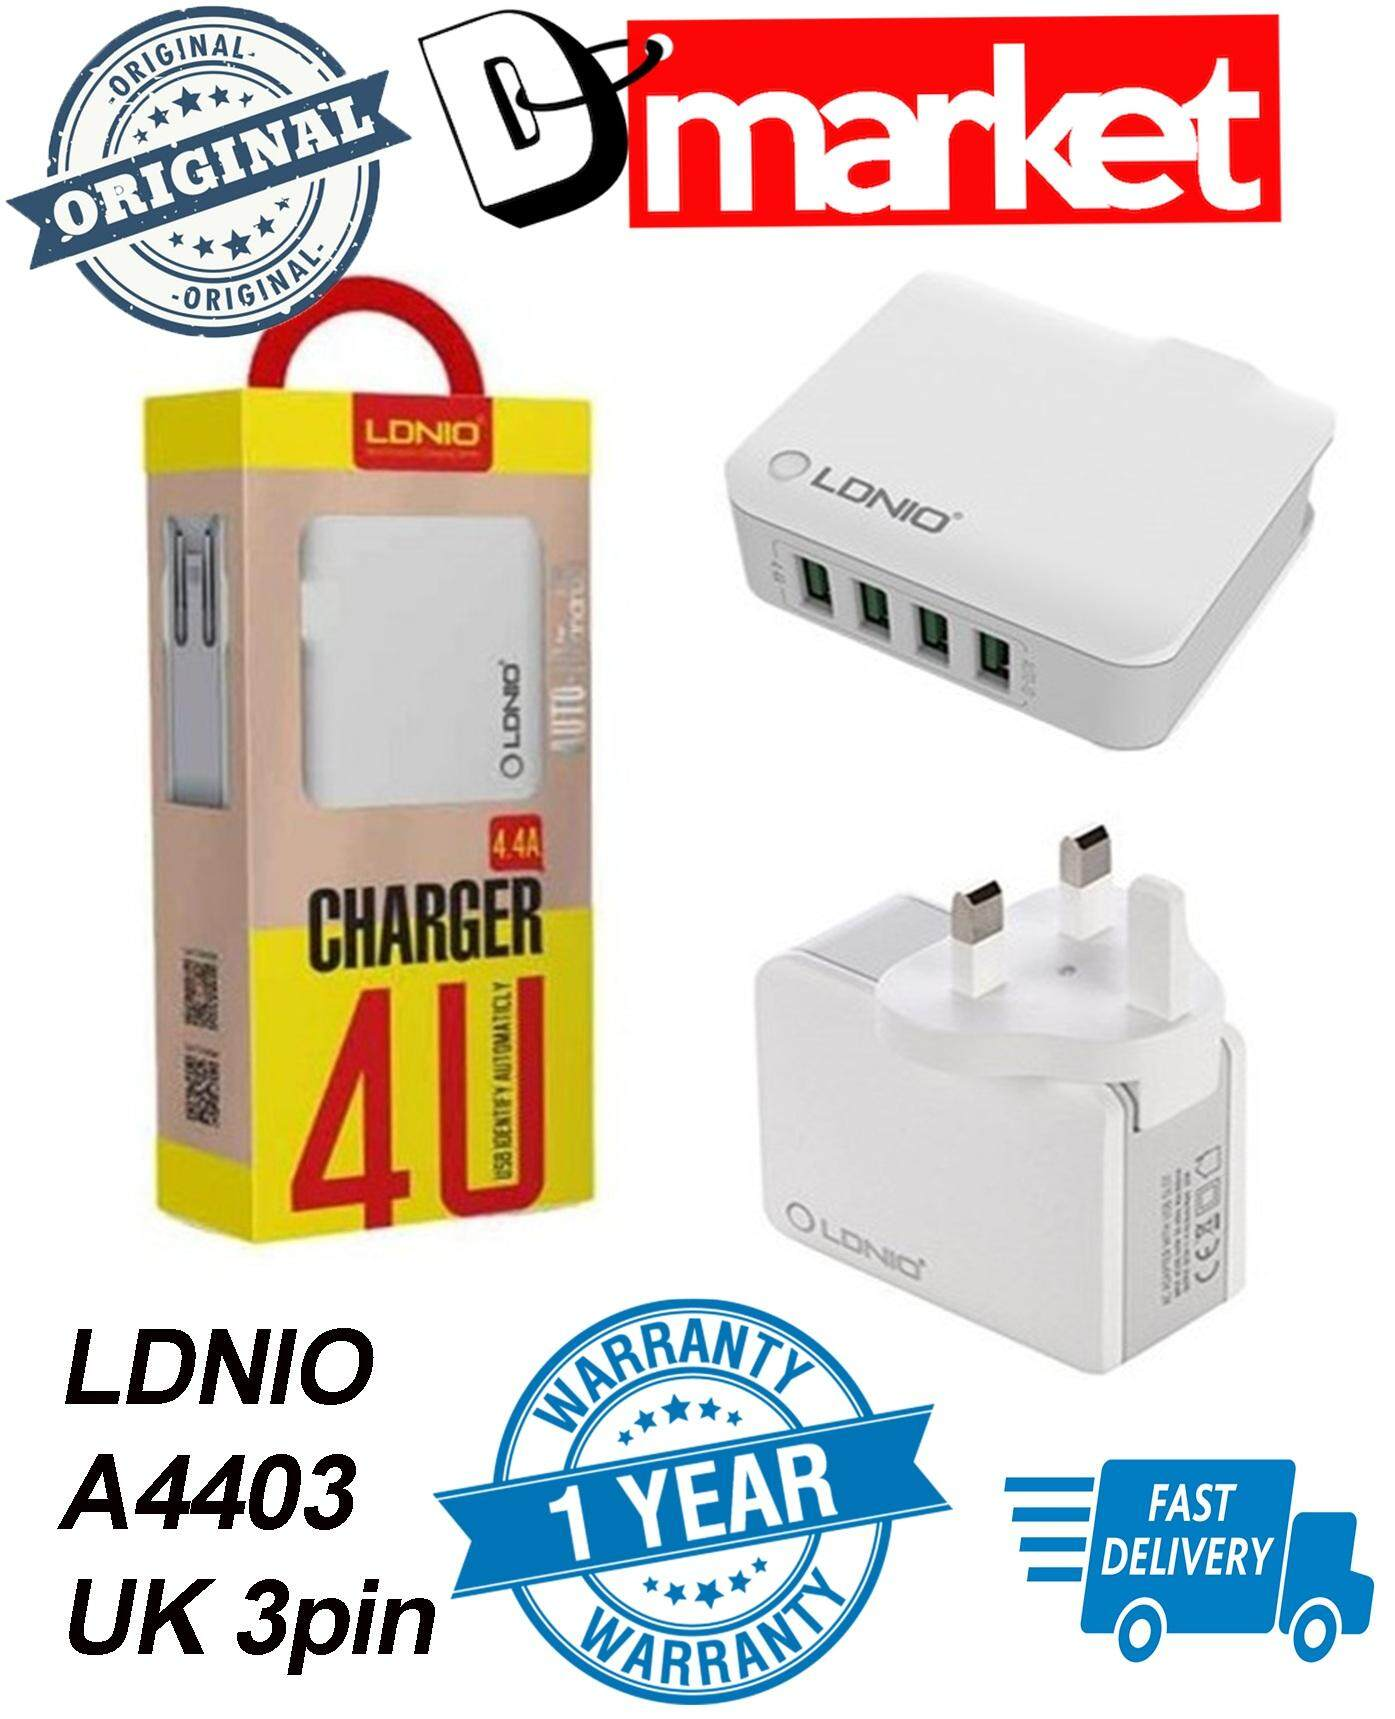 Original Ldnio A4403 4 Usb 4.4a Charger Uk 3pin Plug By Dmarket.